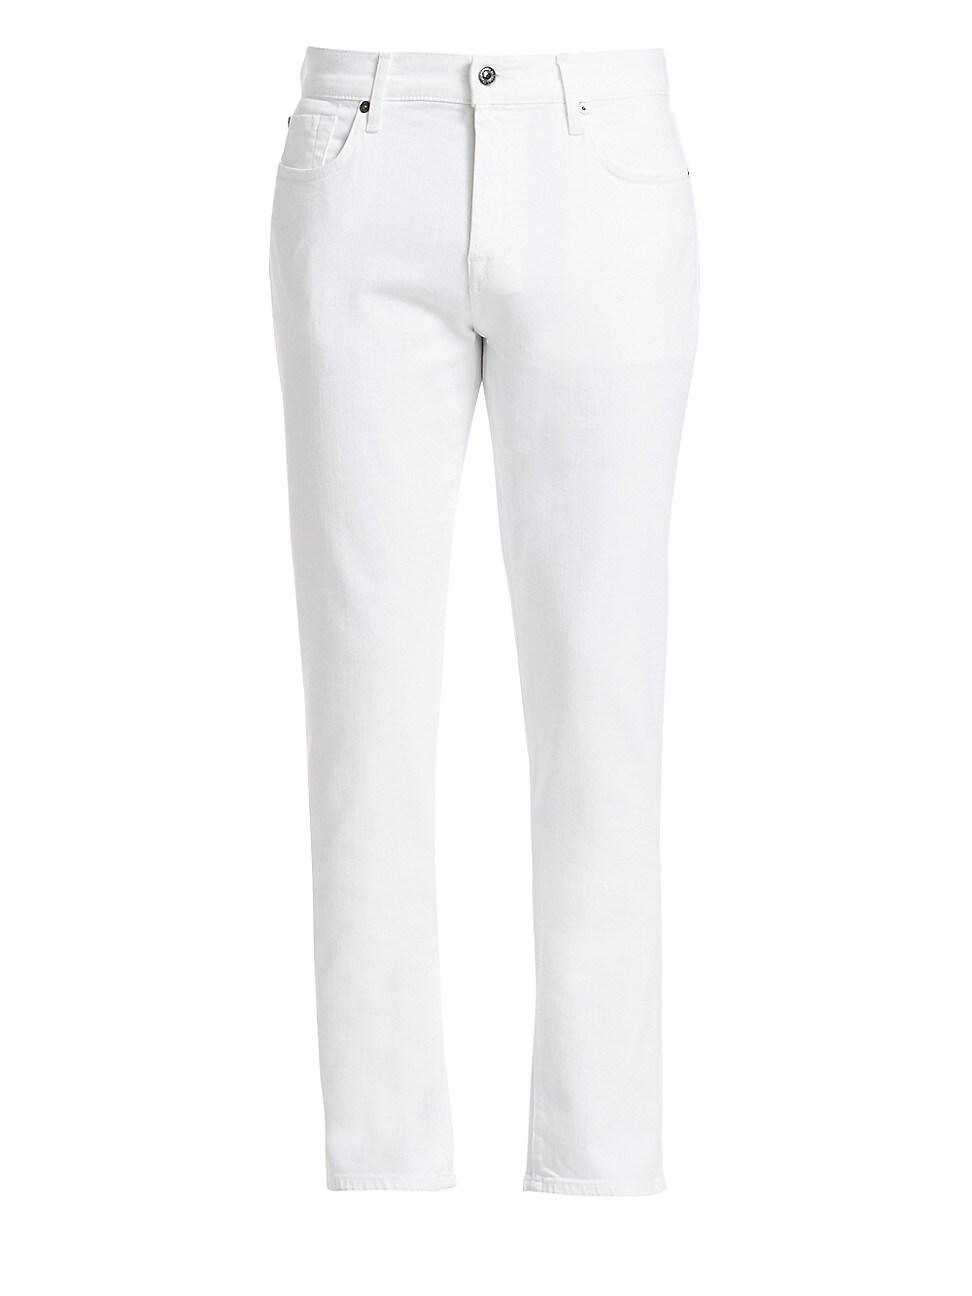 7 For All Mankind Men's Slimmy Luxe Performance Slim-fit Jeans In White